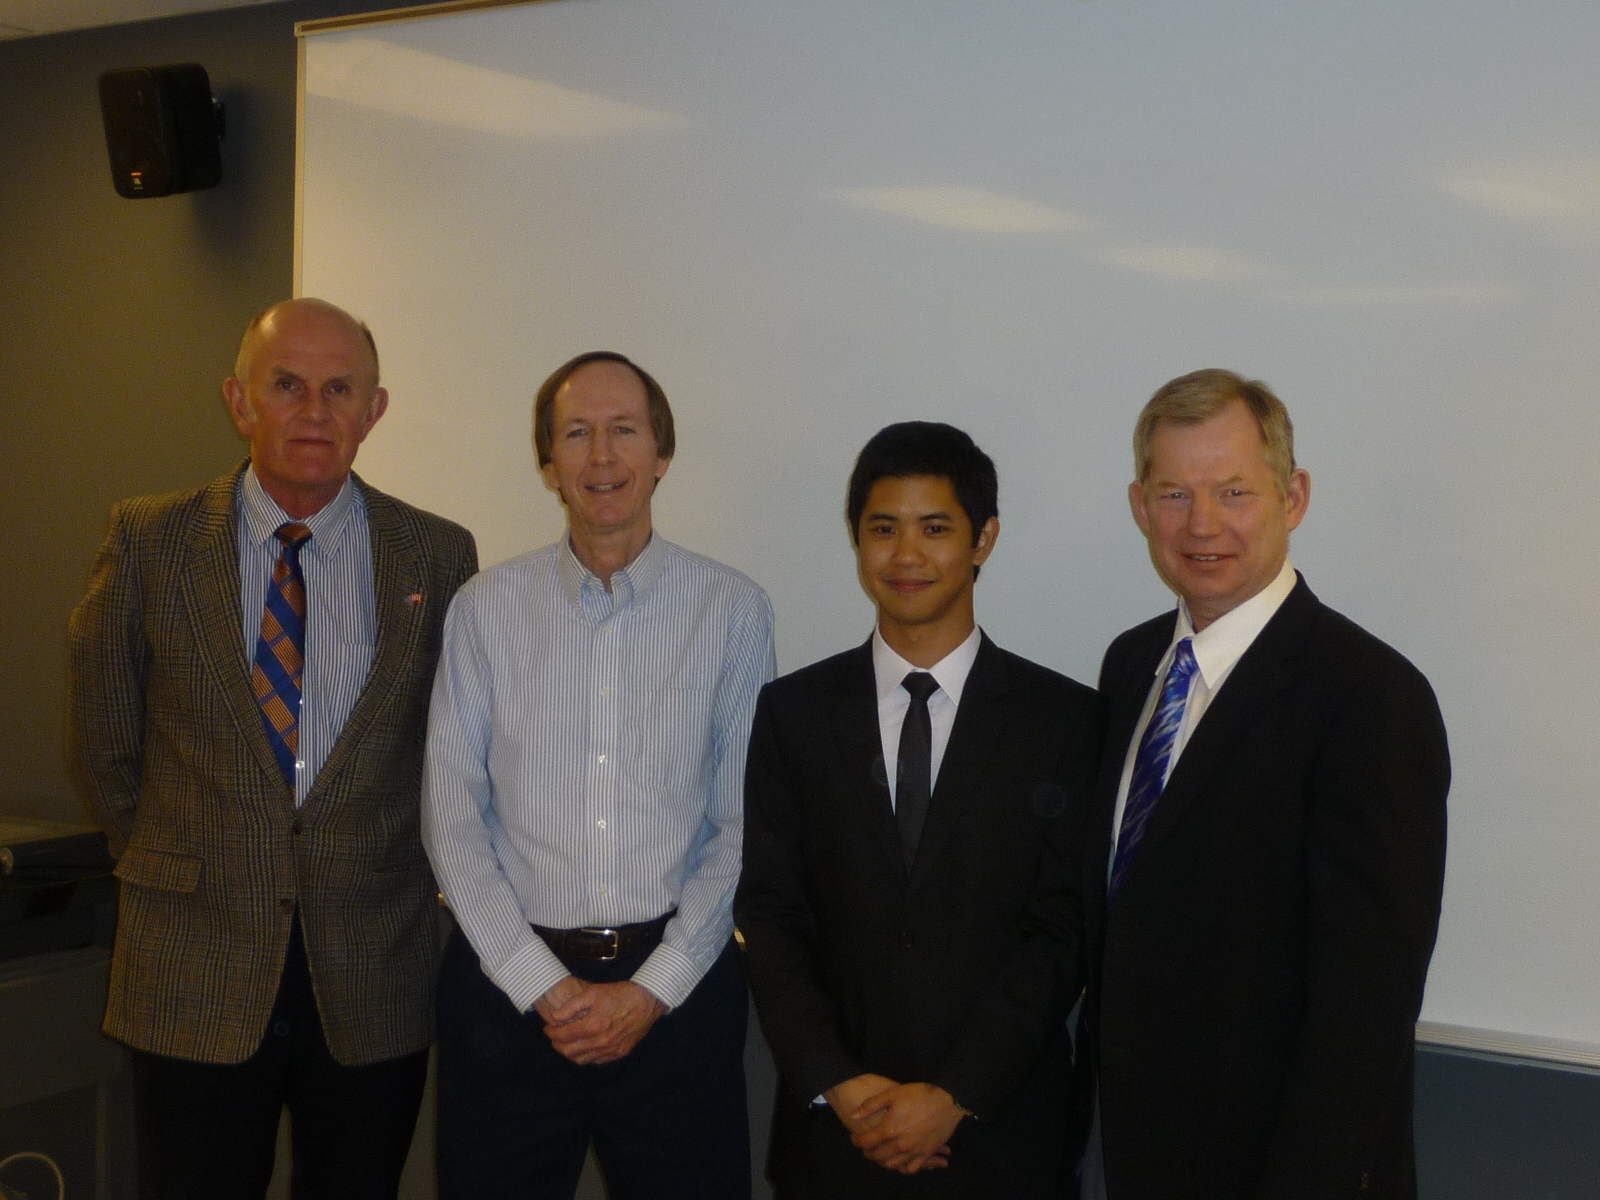 Diego with his Master's thesis committee after his successful defense on April 17.